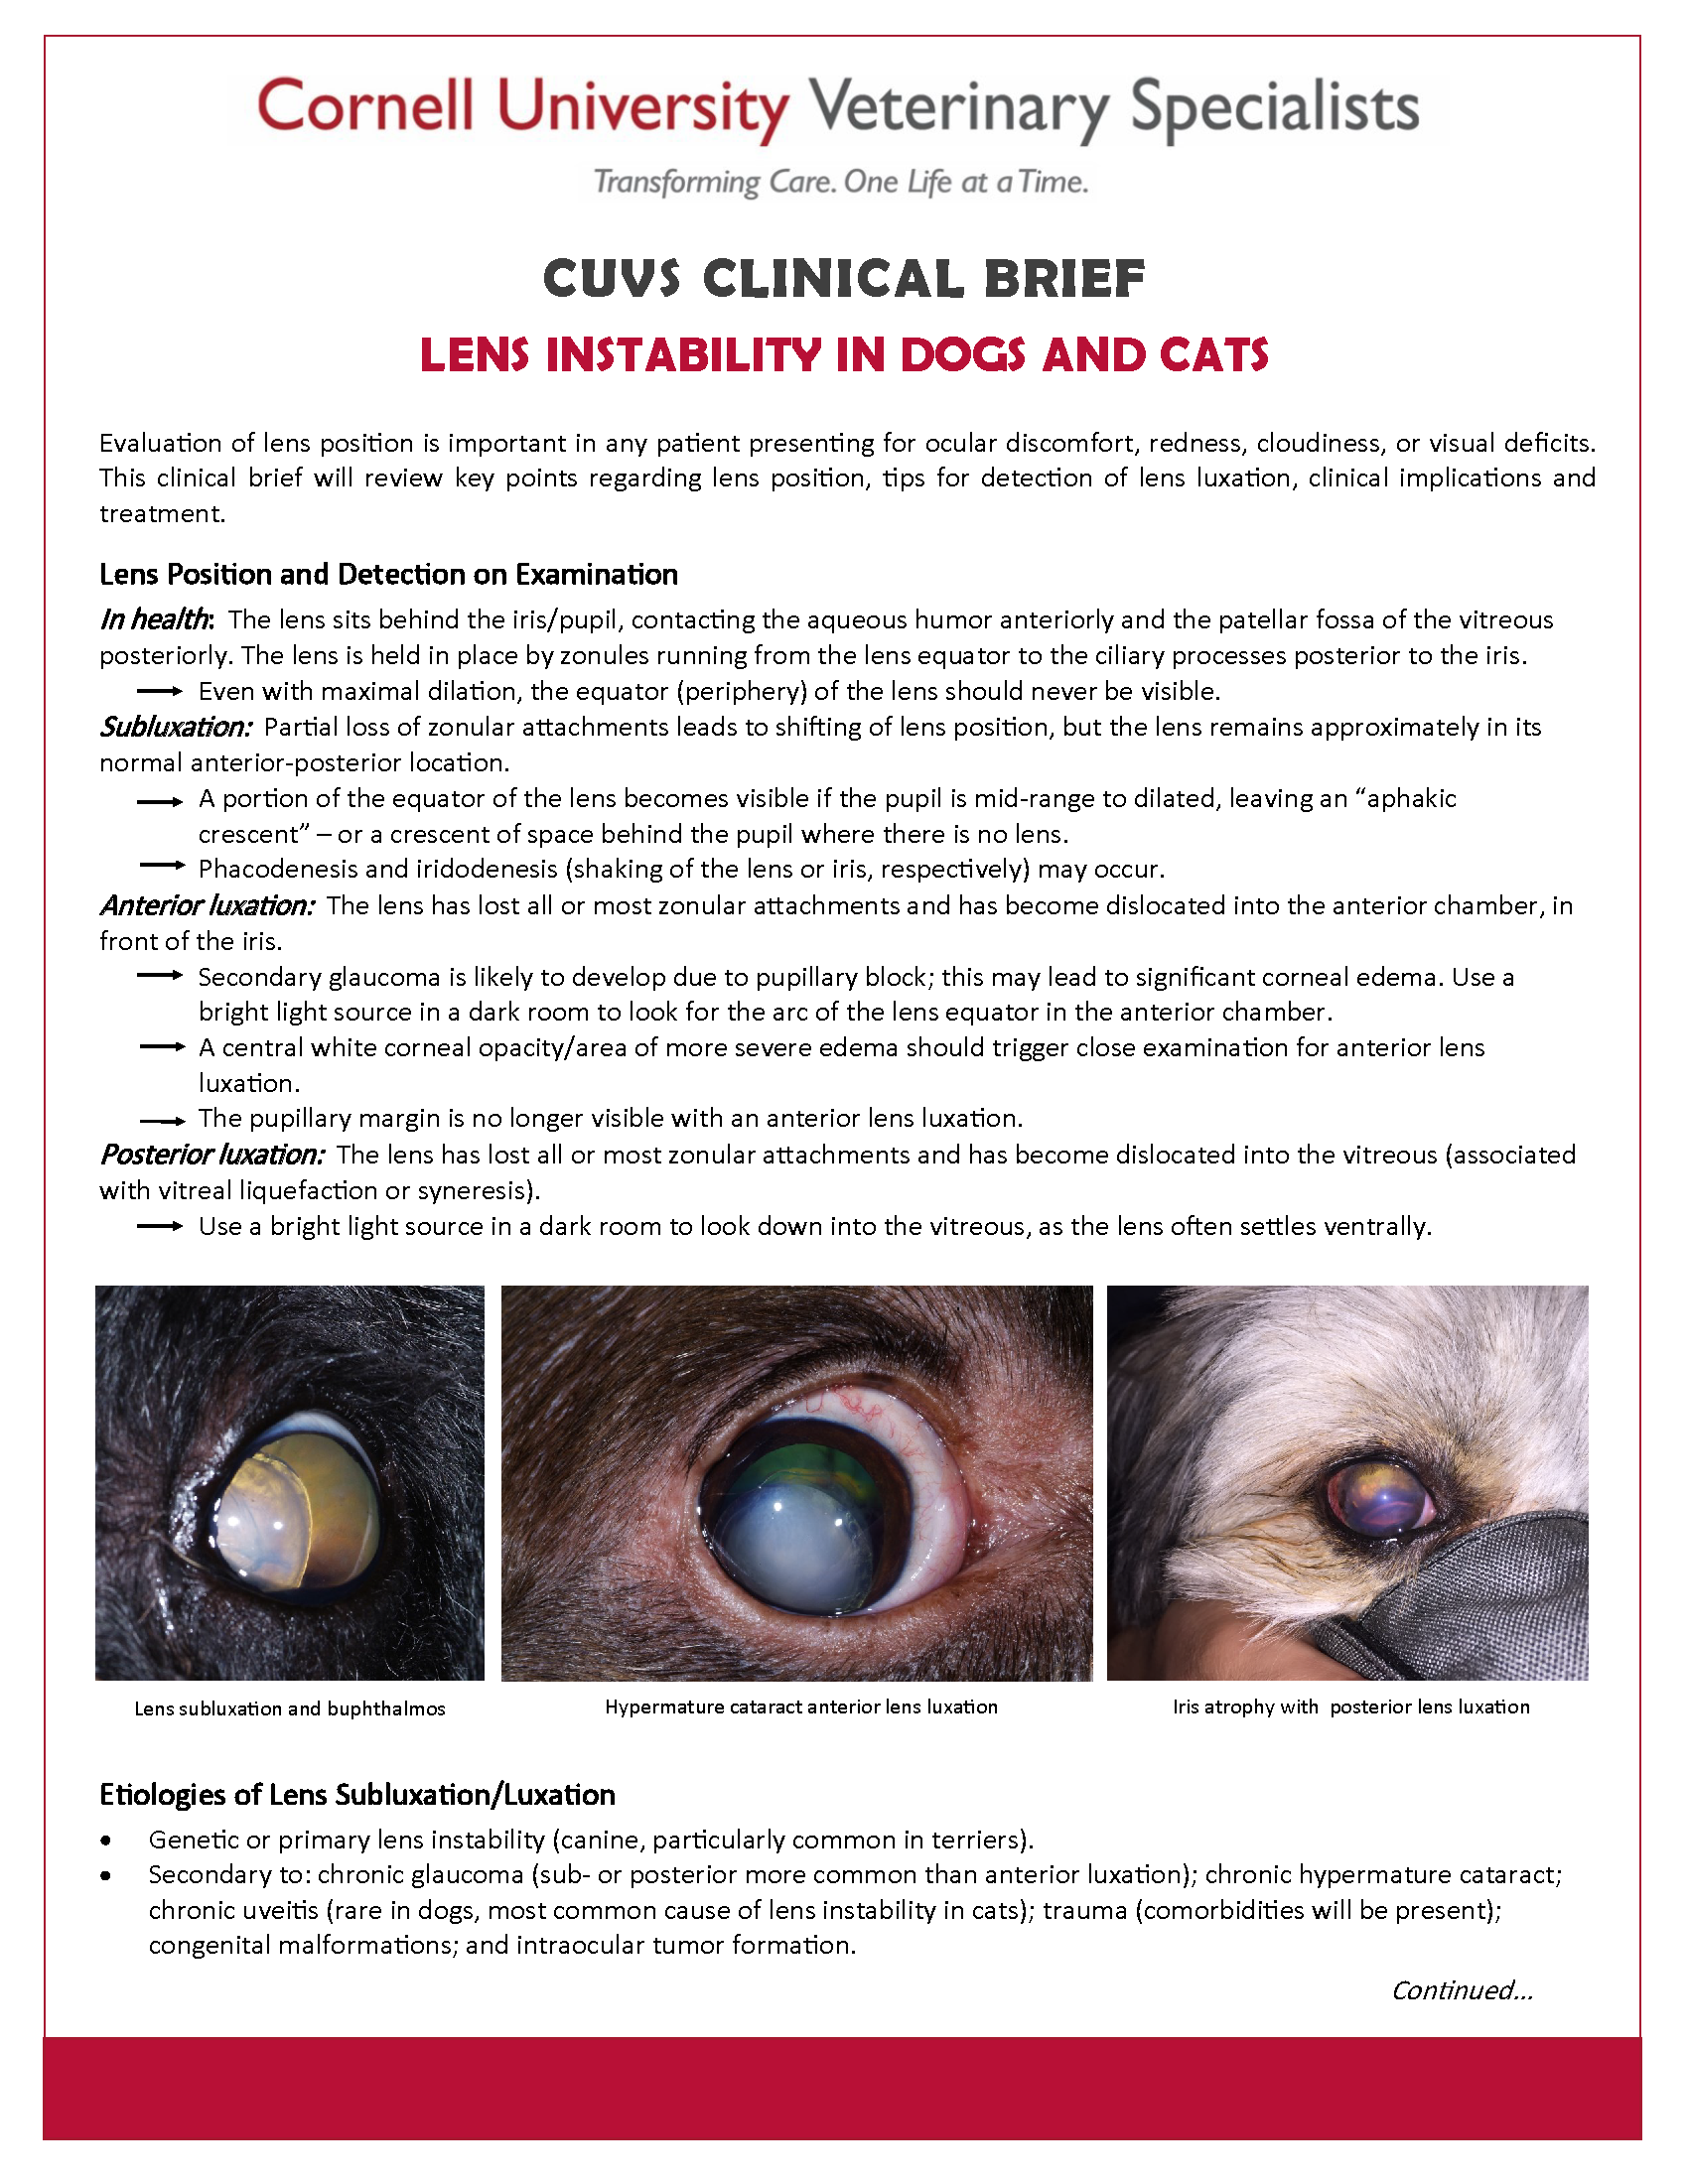 Clinical Brief - Lens Instability in Dogs and Cats